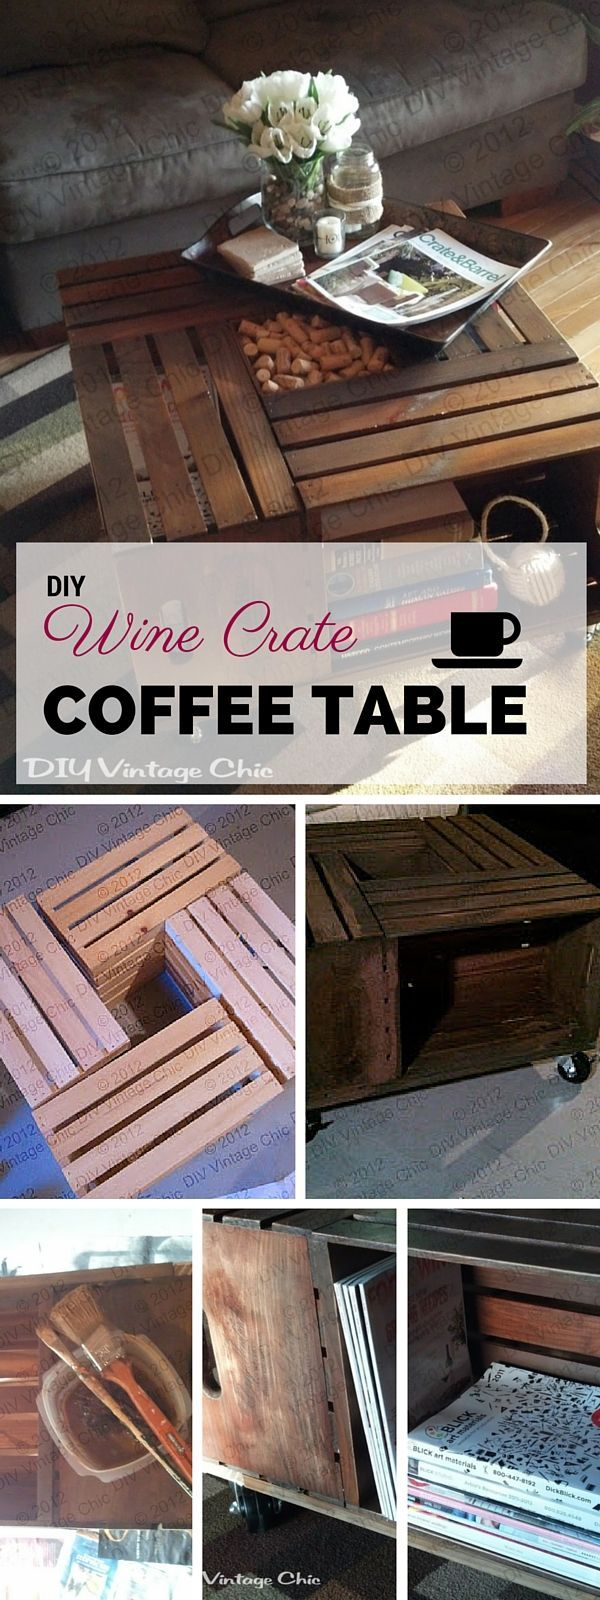 Best 25 wine crate coffee table ideas on pinterest diy crate diy furniture check out the tutorial diy wine crate coffee table rustic geotapseo Images